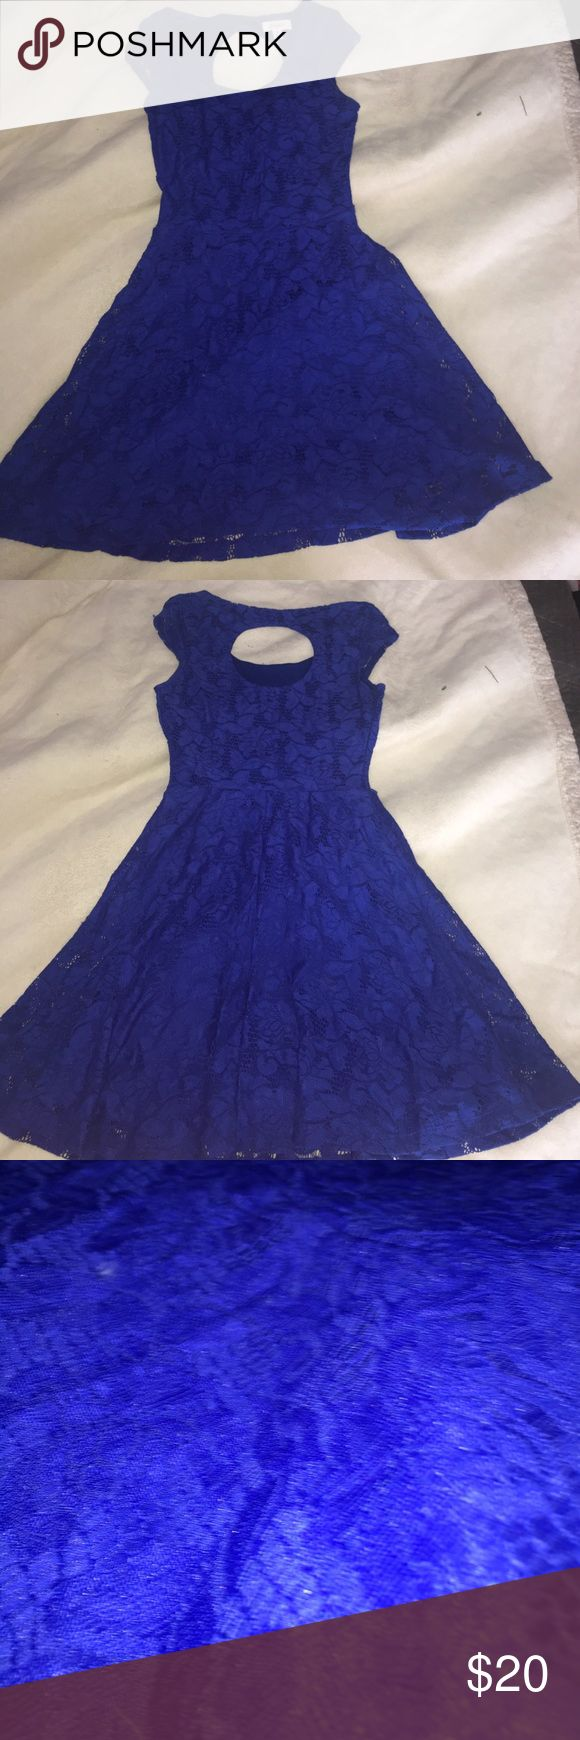 Electric Blue dress Beautifully fitted with a circular cut out in the back. Gorgeous lace flower pattern. Super comfortable and perfect for formal events! Any questions please ask! Candie's Dresses Midi